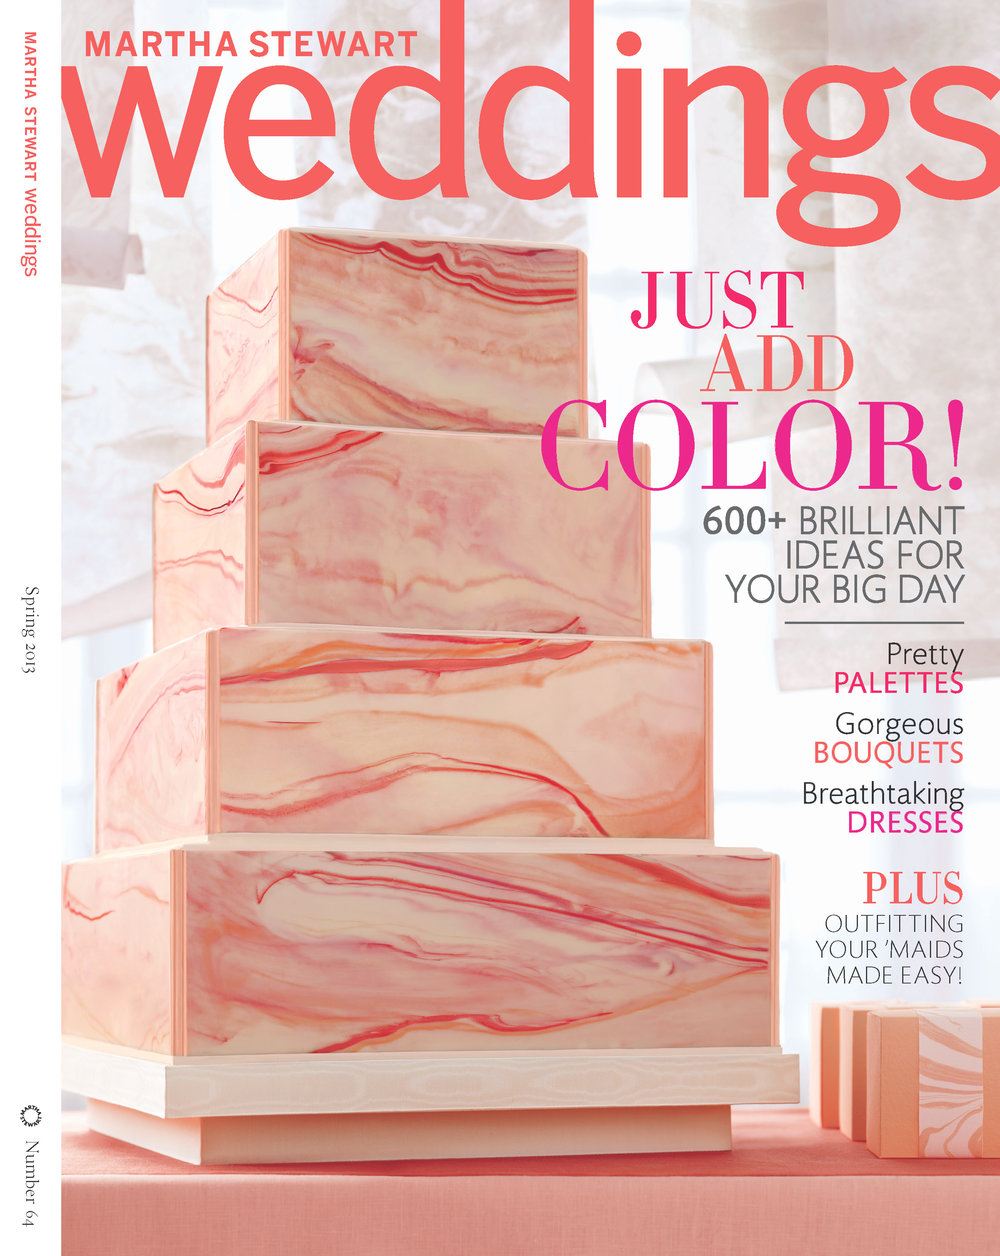 Weddings Spring 13 Cover.jpg